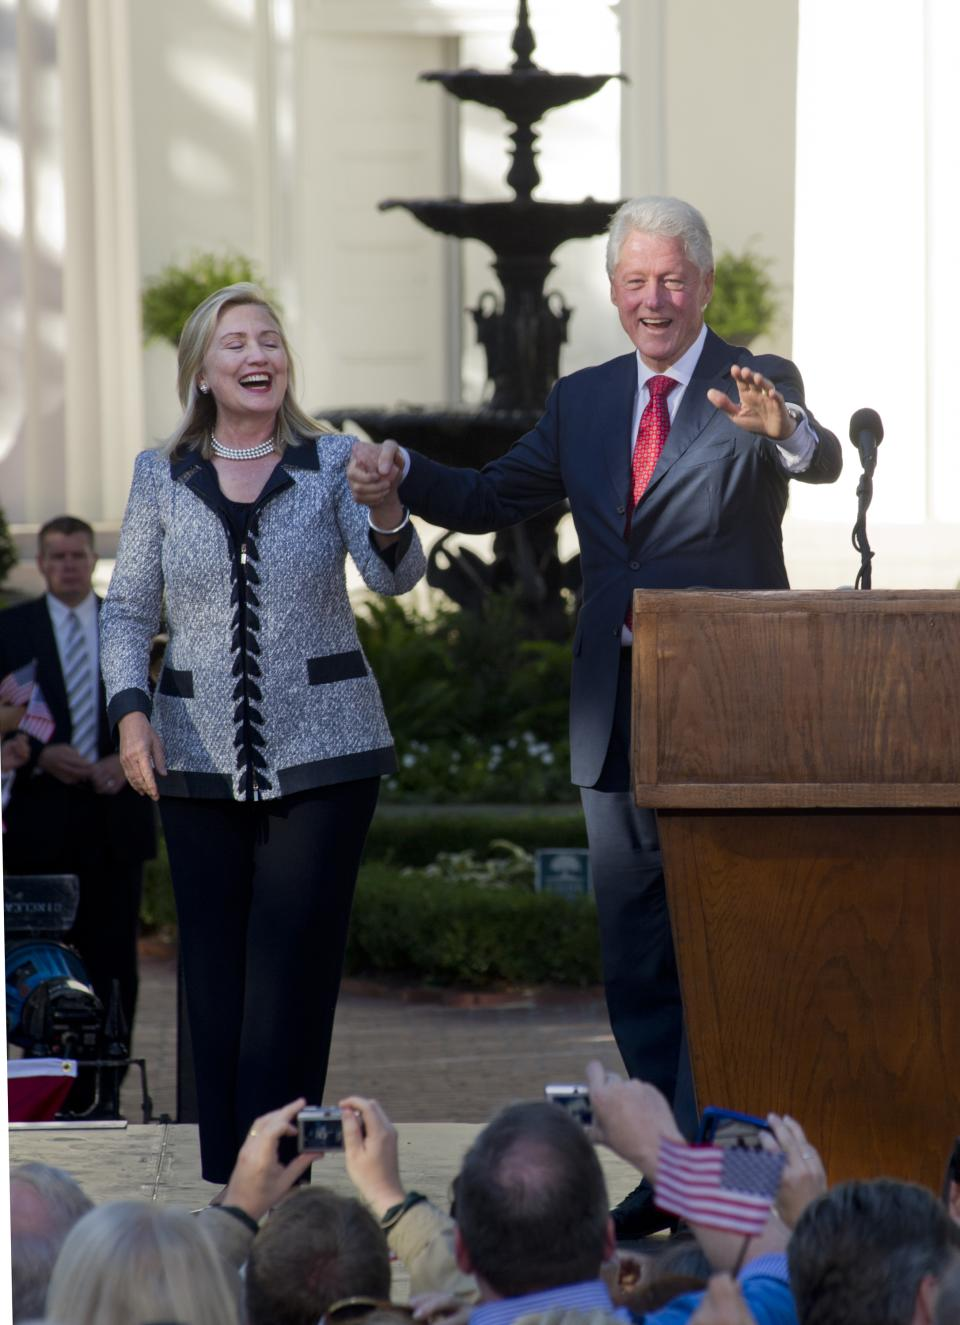 Former President Bill Clinton, right, and U.S. Secretary of State Hillary Rodham Clinton, left, arrive Saturday Oct. 1, 2011 in Little Rock, Ark. at a celebration of the 20th anniversary of former President Clinton's announcement that he would run for President. (AP Photo/Brian Chilson)